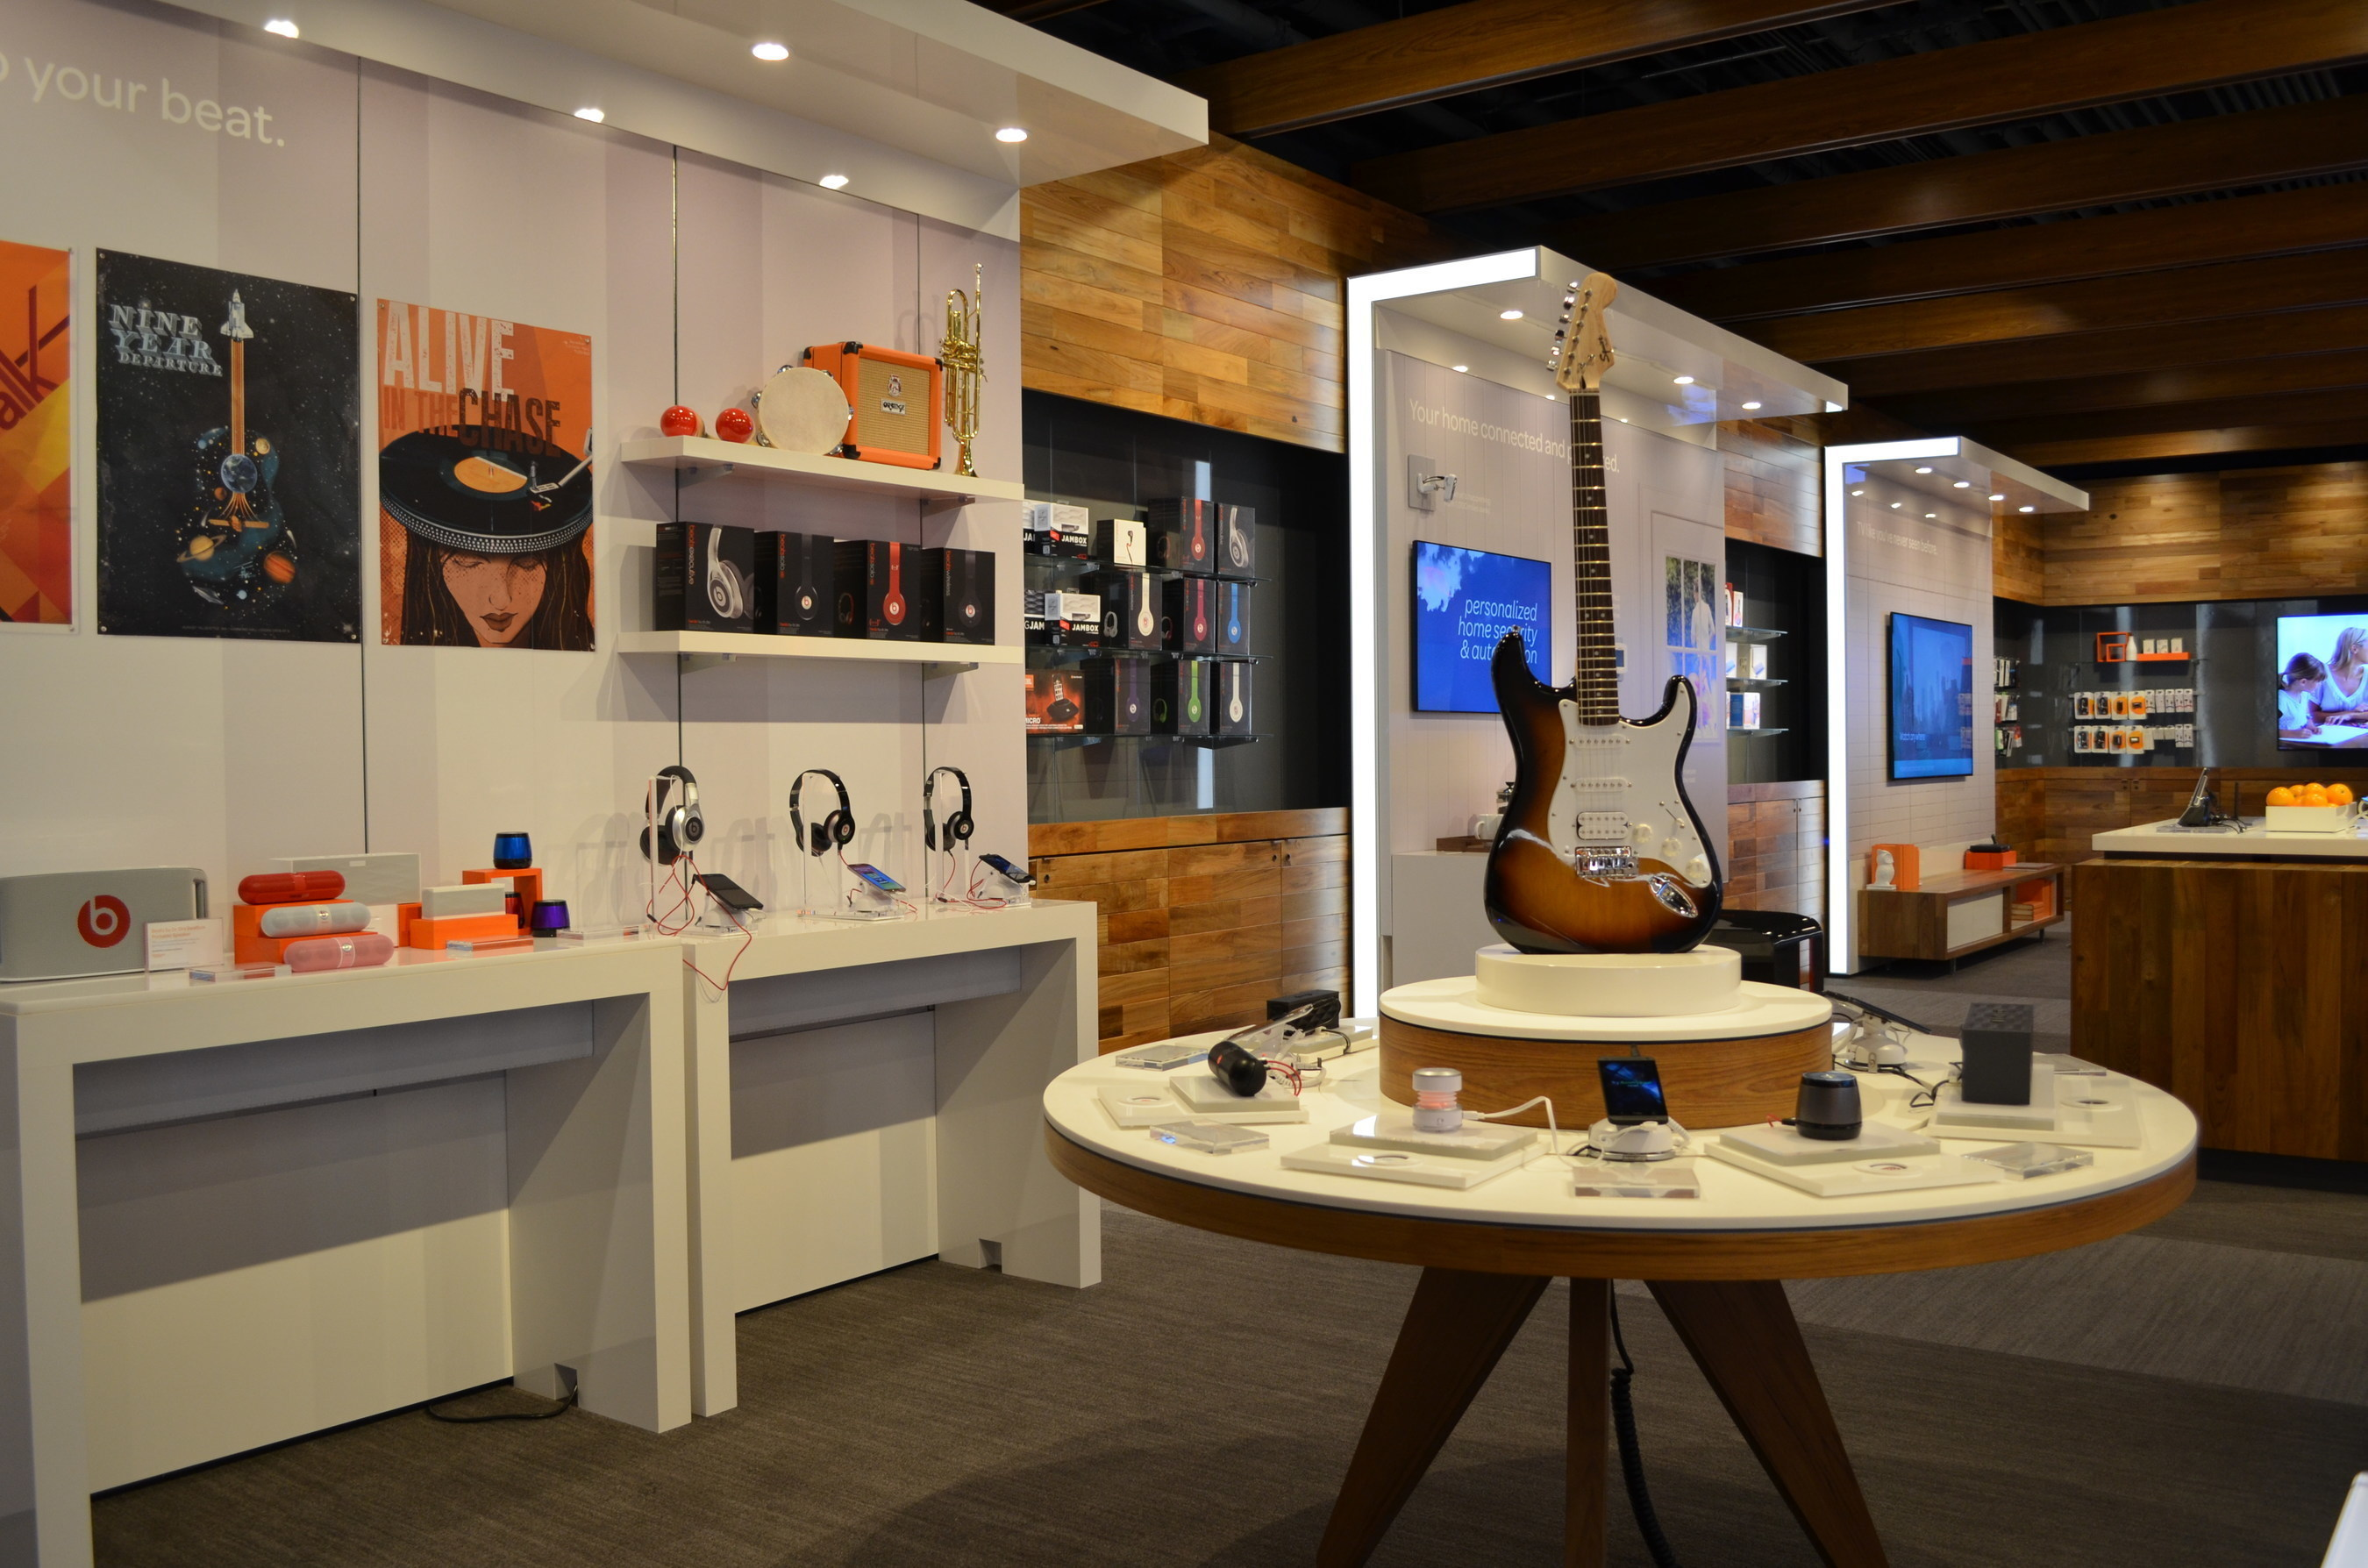 AT&T's New Store Of The Future In Daly City Features Tech-Forward Design For Customers' Mobile Lifestyles